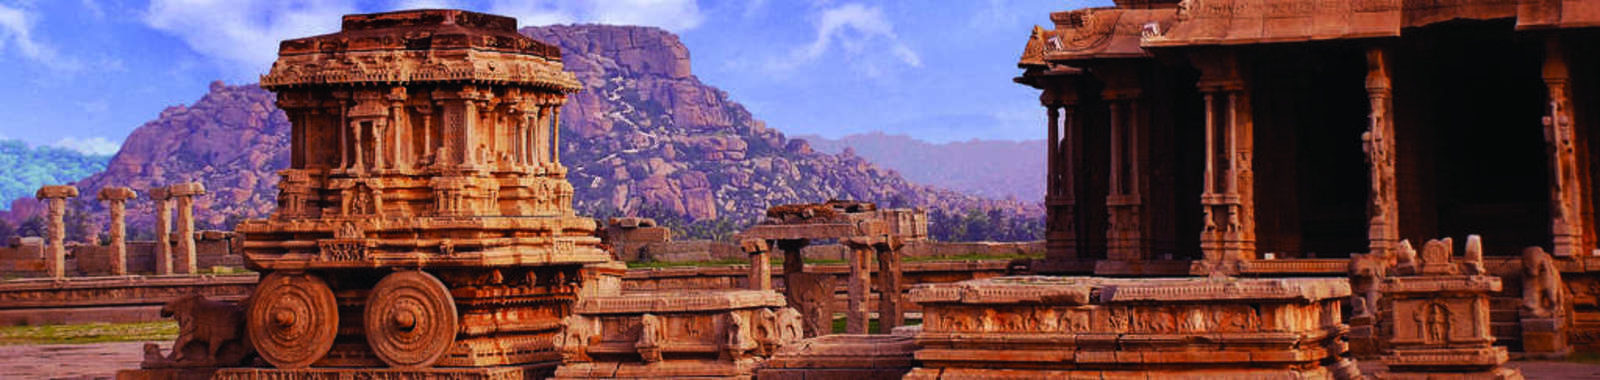 Discover Hampi and the Deccan Sultanates on a tailor made holiday to South India